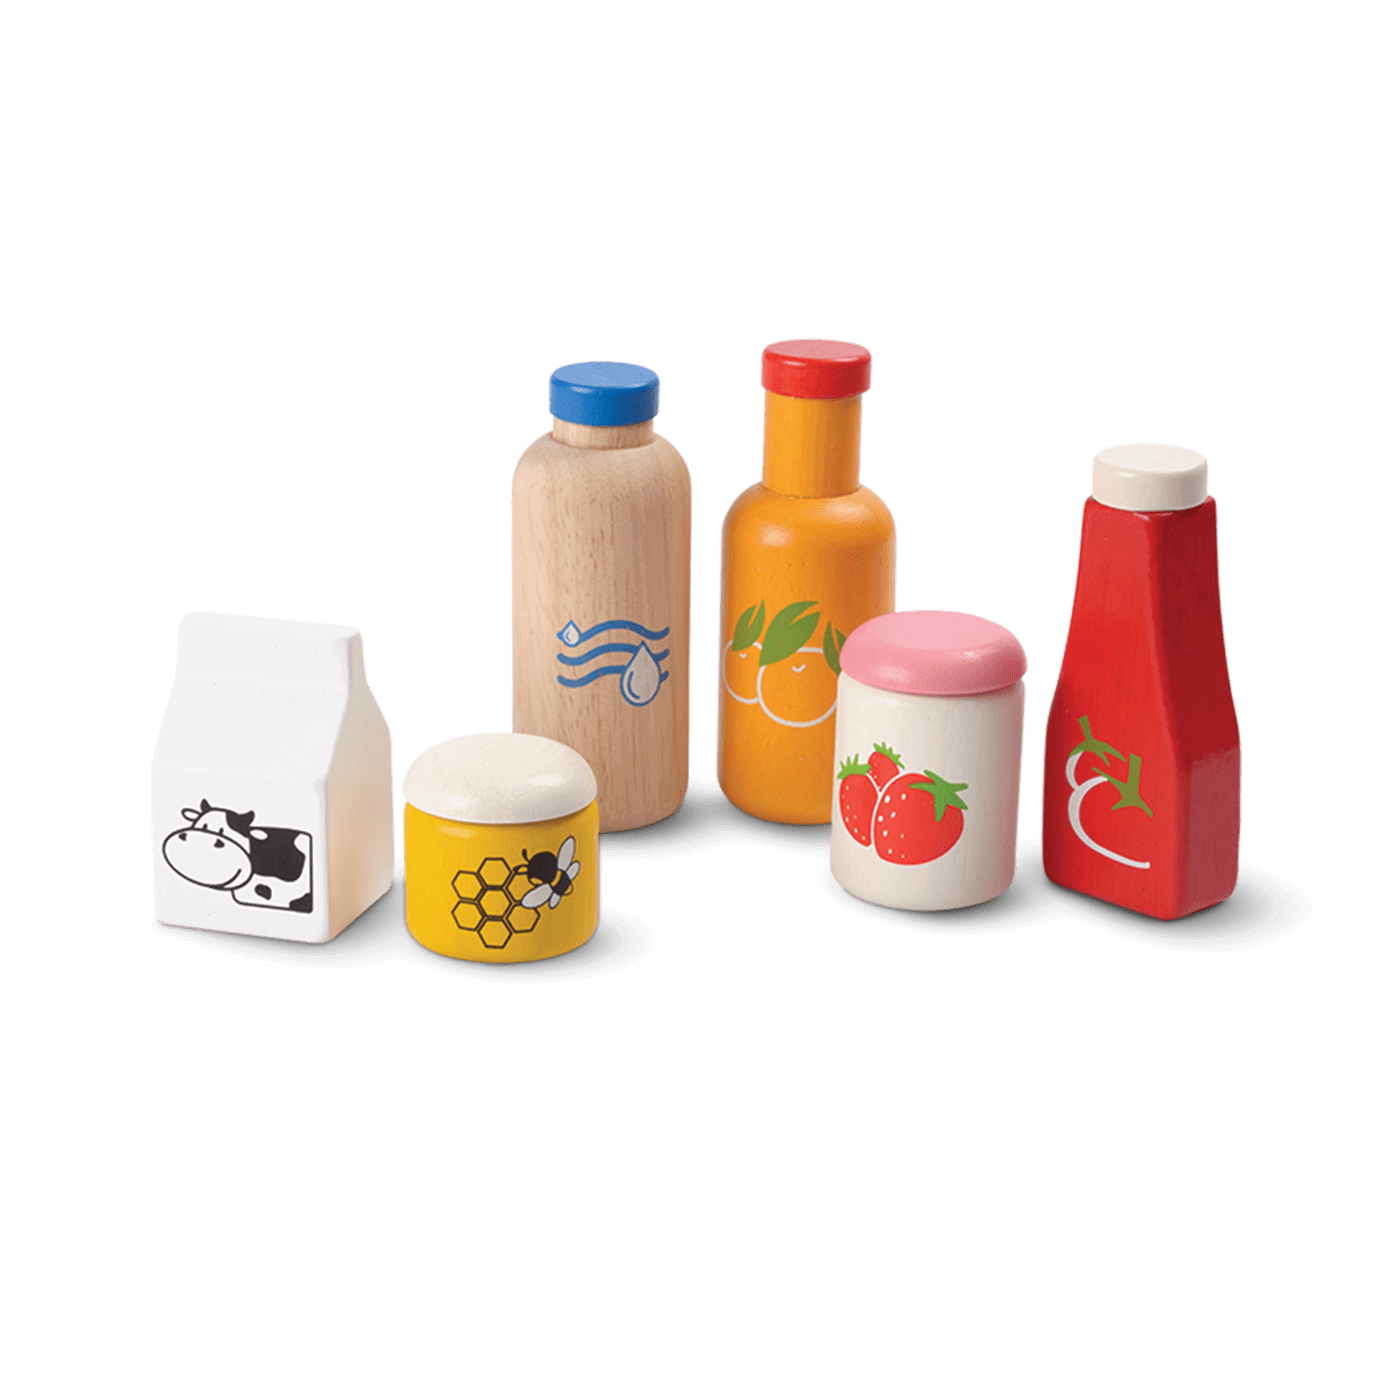 3432_PlanToys_FOOD_and_BEVERAGE_SET_Pretend_Play_Imagination_Language_and_Communications_Social_Fine_Motor_3yrs_Wooden_toys_Education_toys_Safety_Toys_Non-toxic_0.png